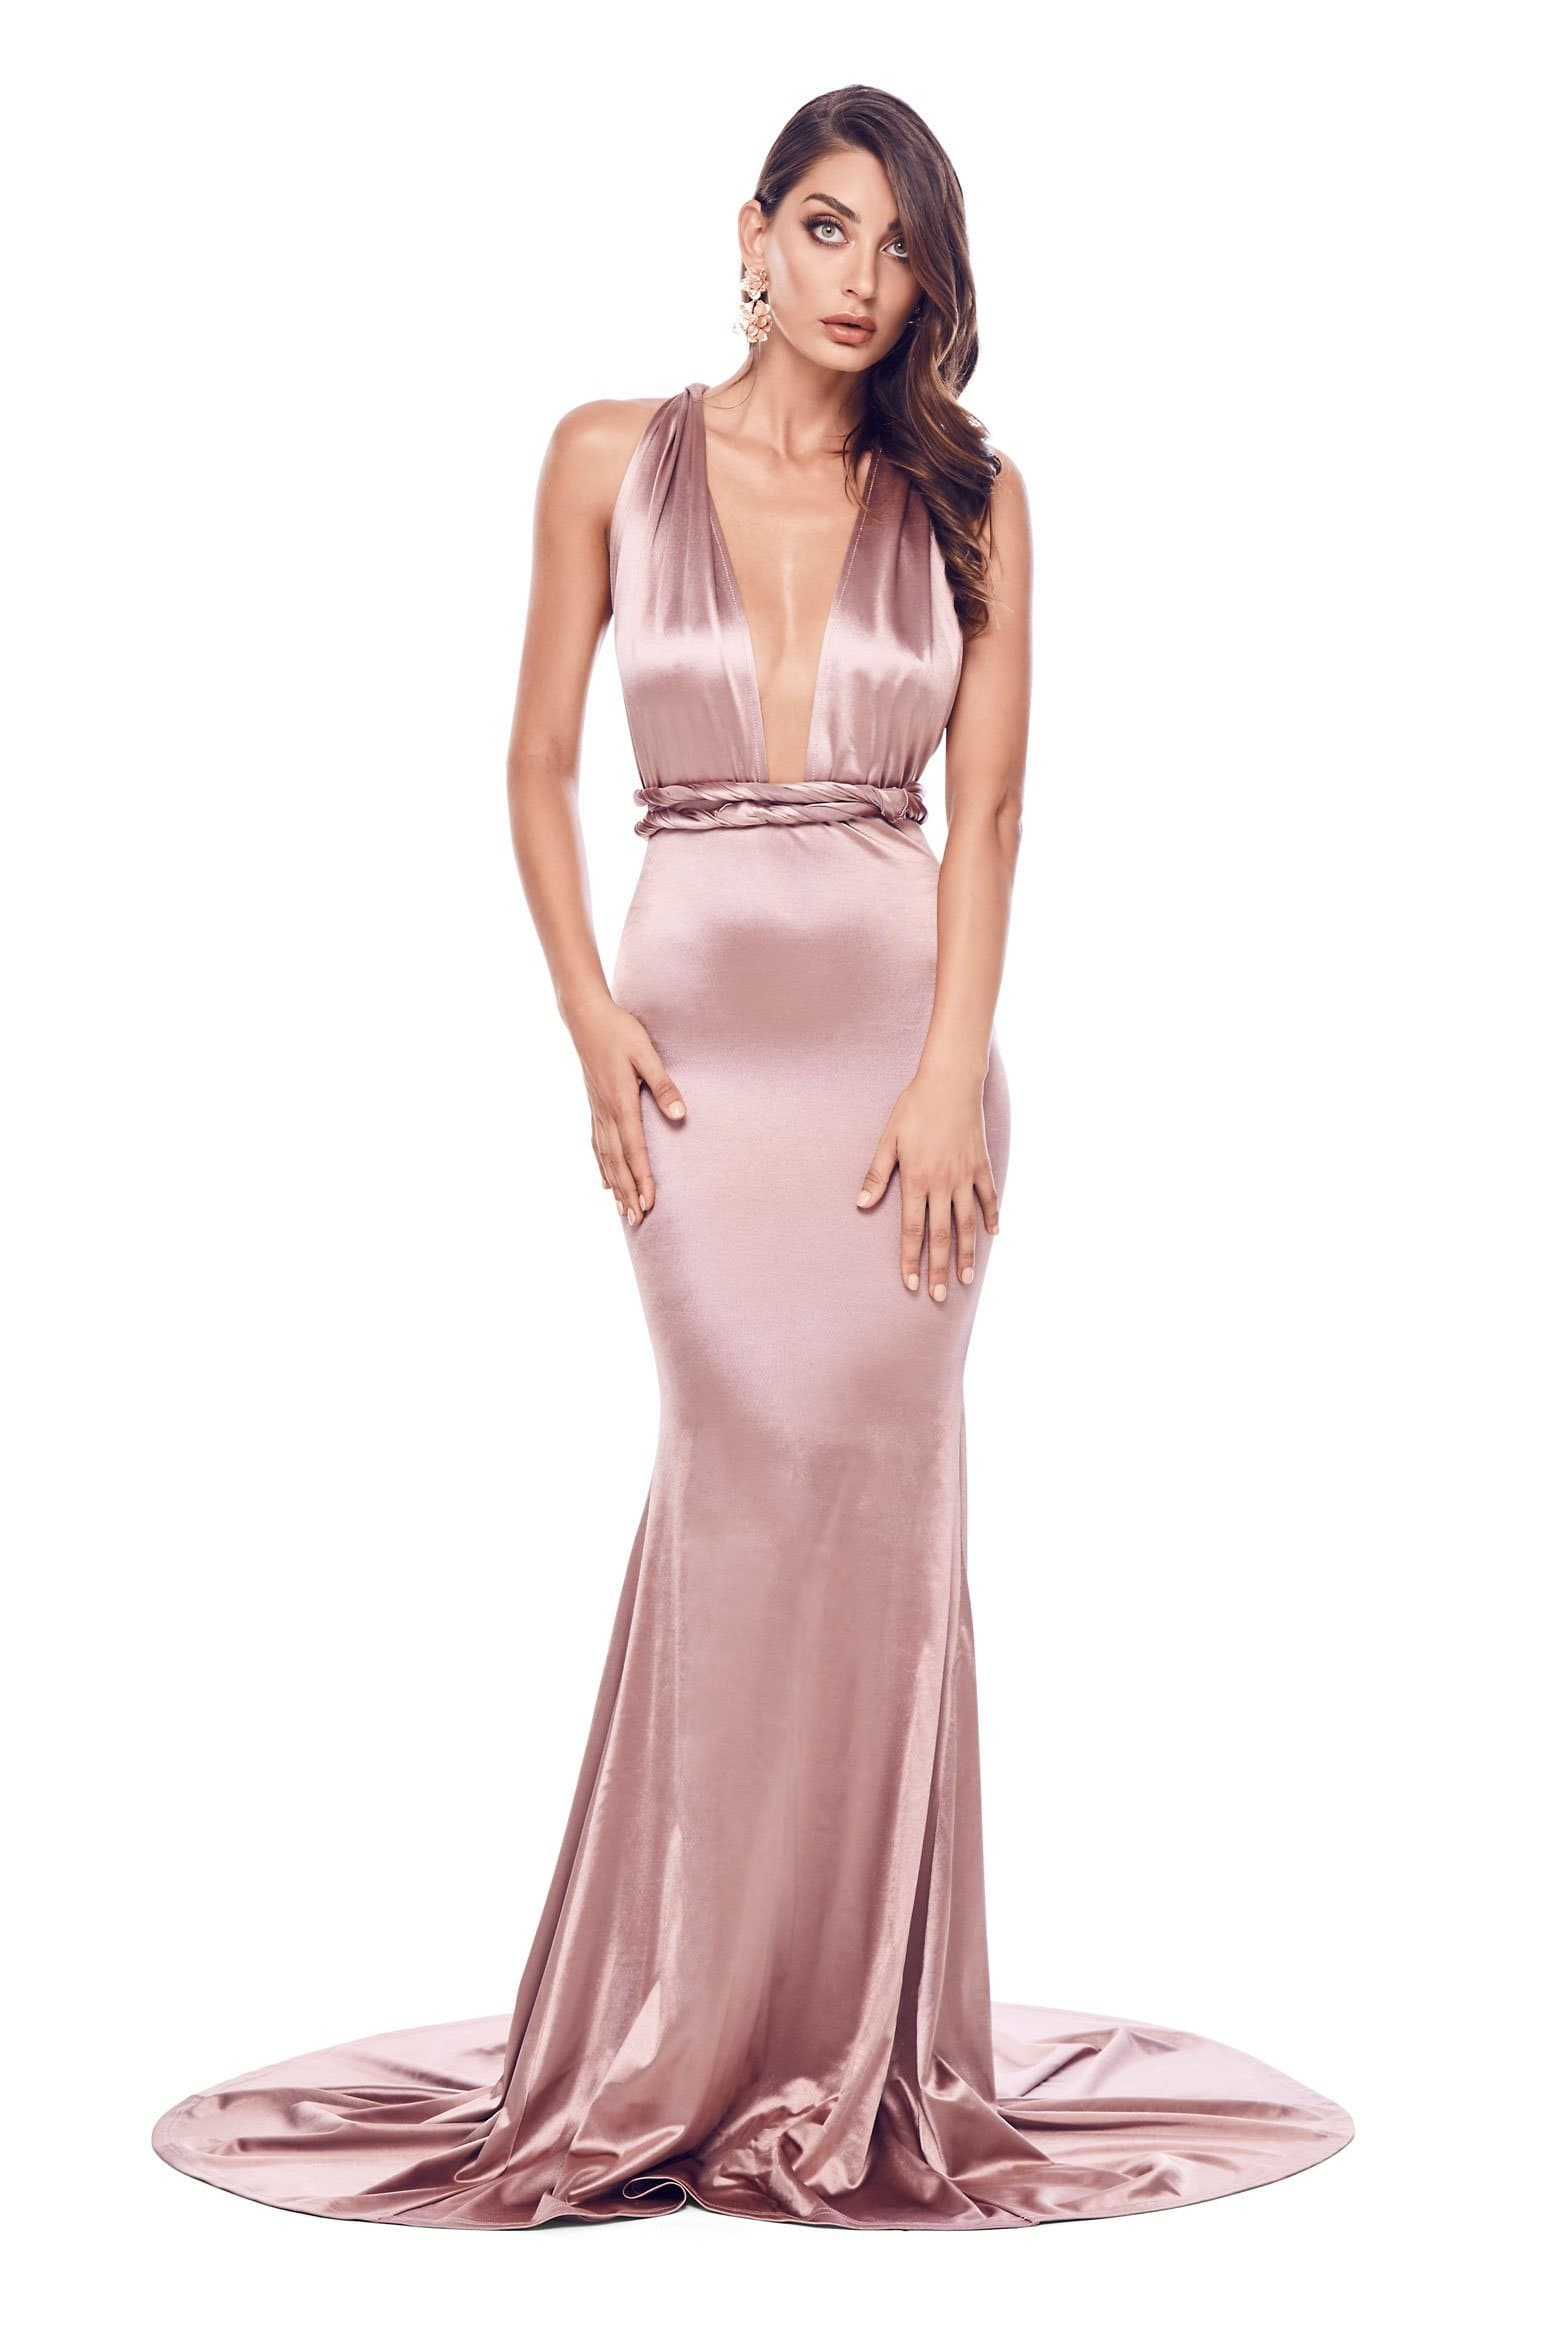 Lena - Rose Gold Satin Multiway Gown with Mermaid Train & Plunge Neck